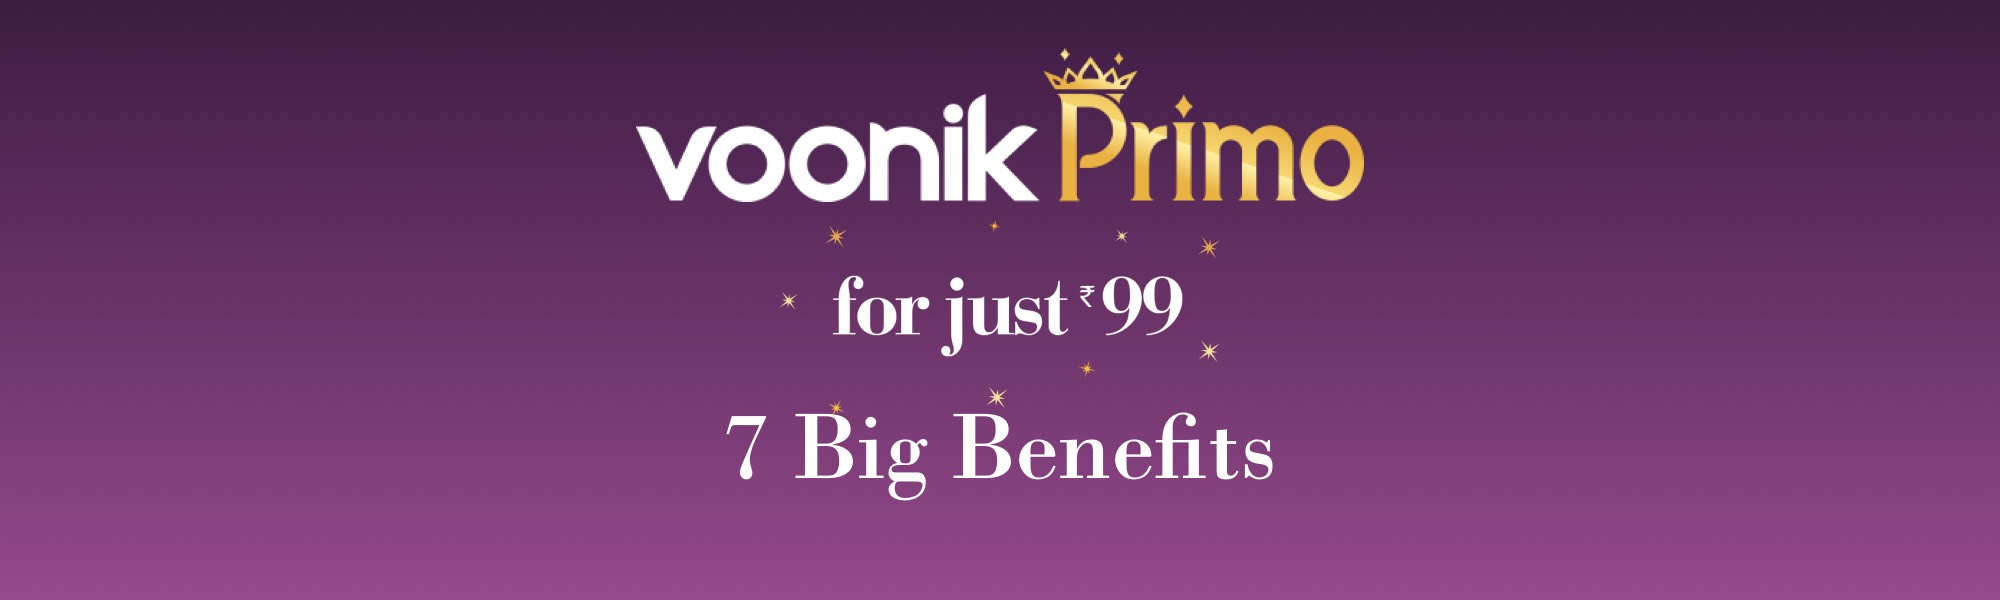 Buy Voonik Primo Get Free Delivery On All Products + 200 Credits Worth Rs.200 Only For Rs.99